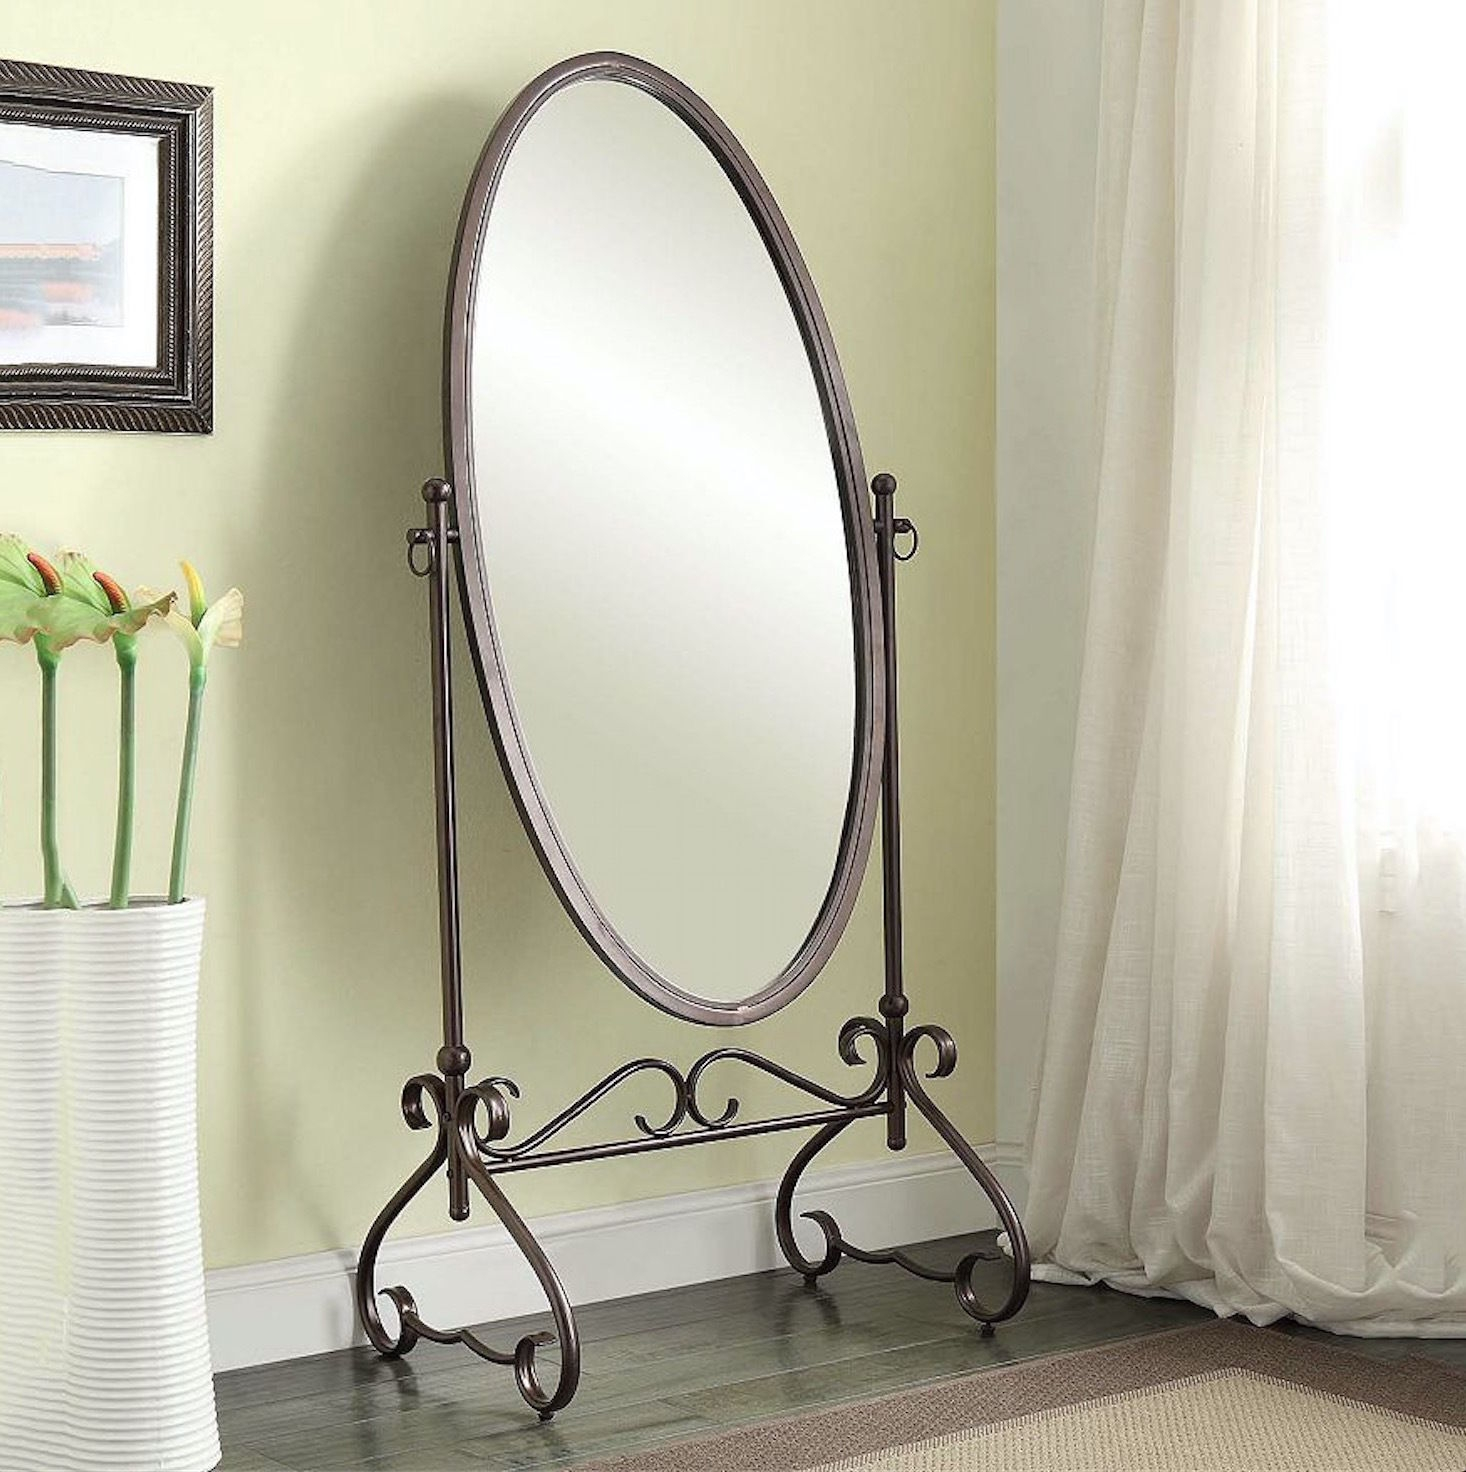 Cheval Floor Mirror Large Oval Antique Bedroom Full Length Tilt Intended For Antique Free Standing Mirror (Image 7 of 15)